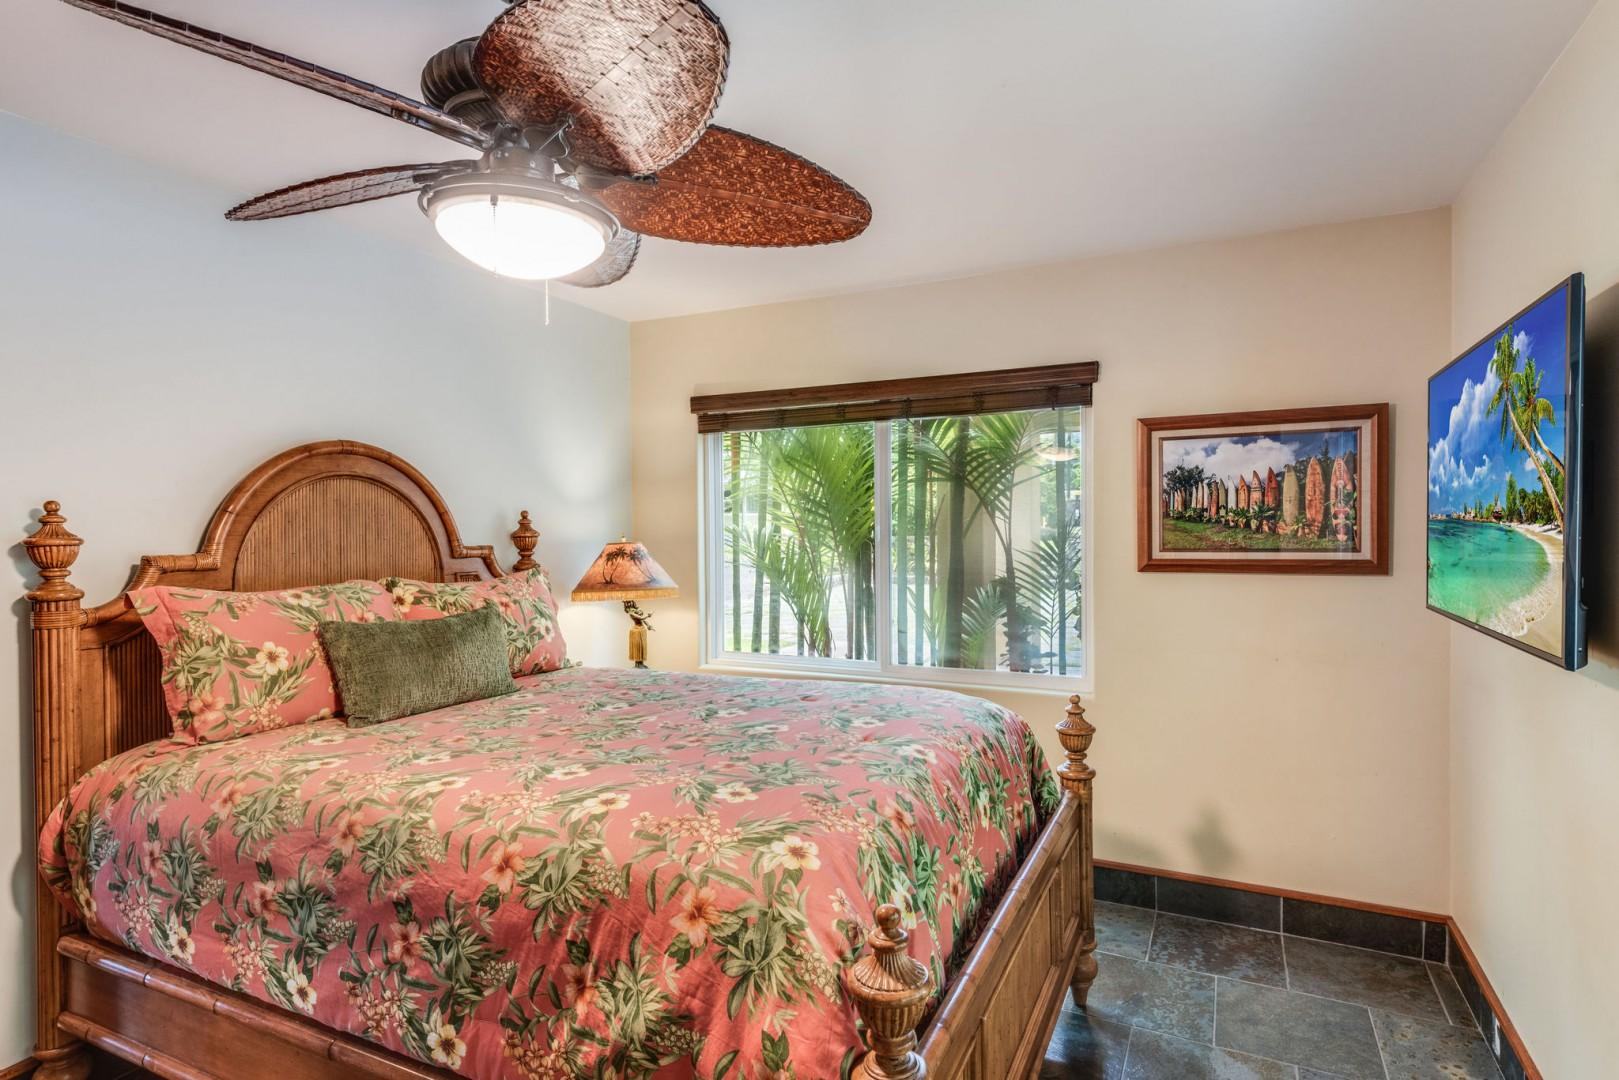 Hale Moana guest bedroom featuring a Queen bed